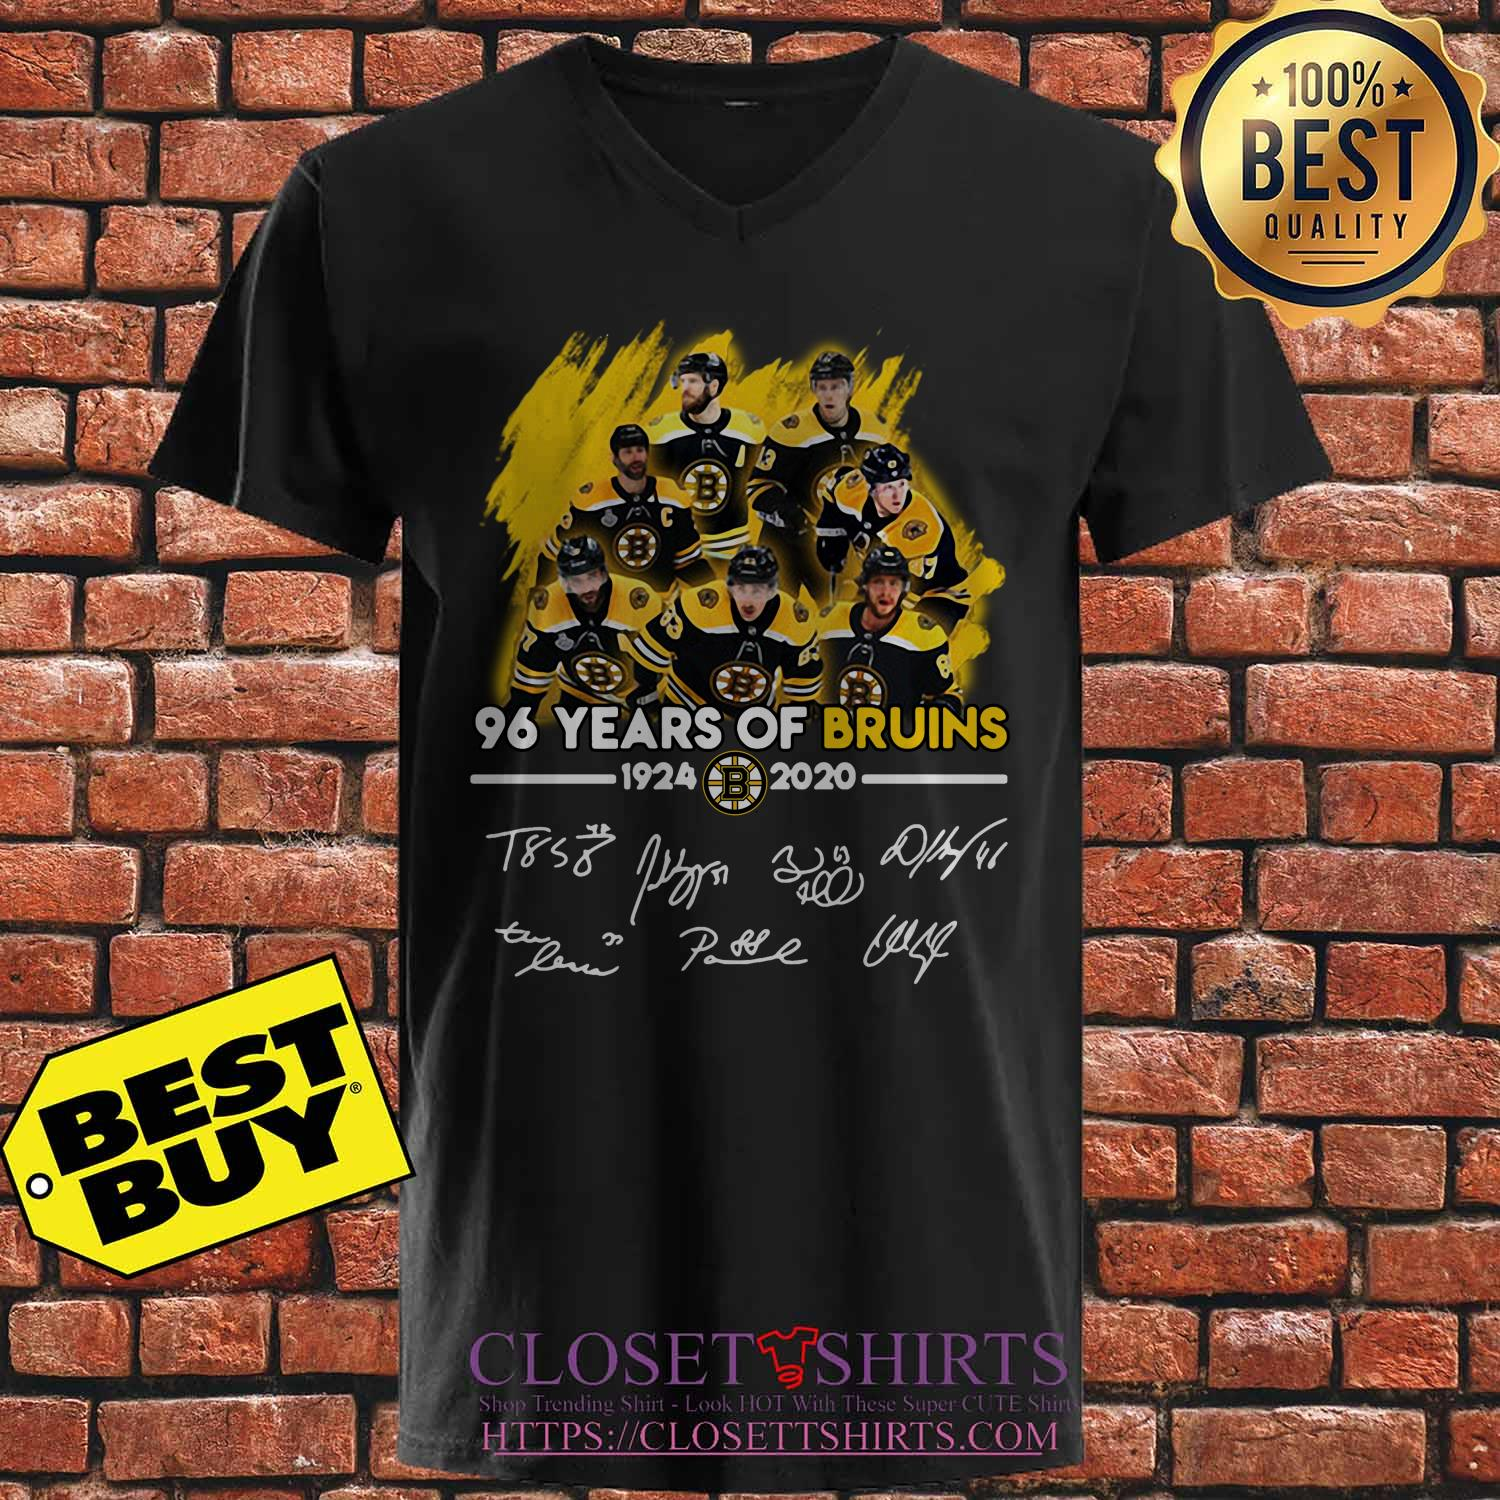 96 Years Of Boston Bruins 1924 2020 Players Signatures v neck